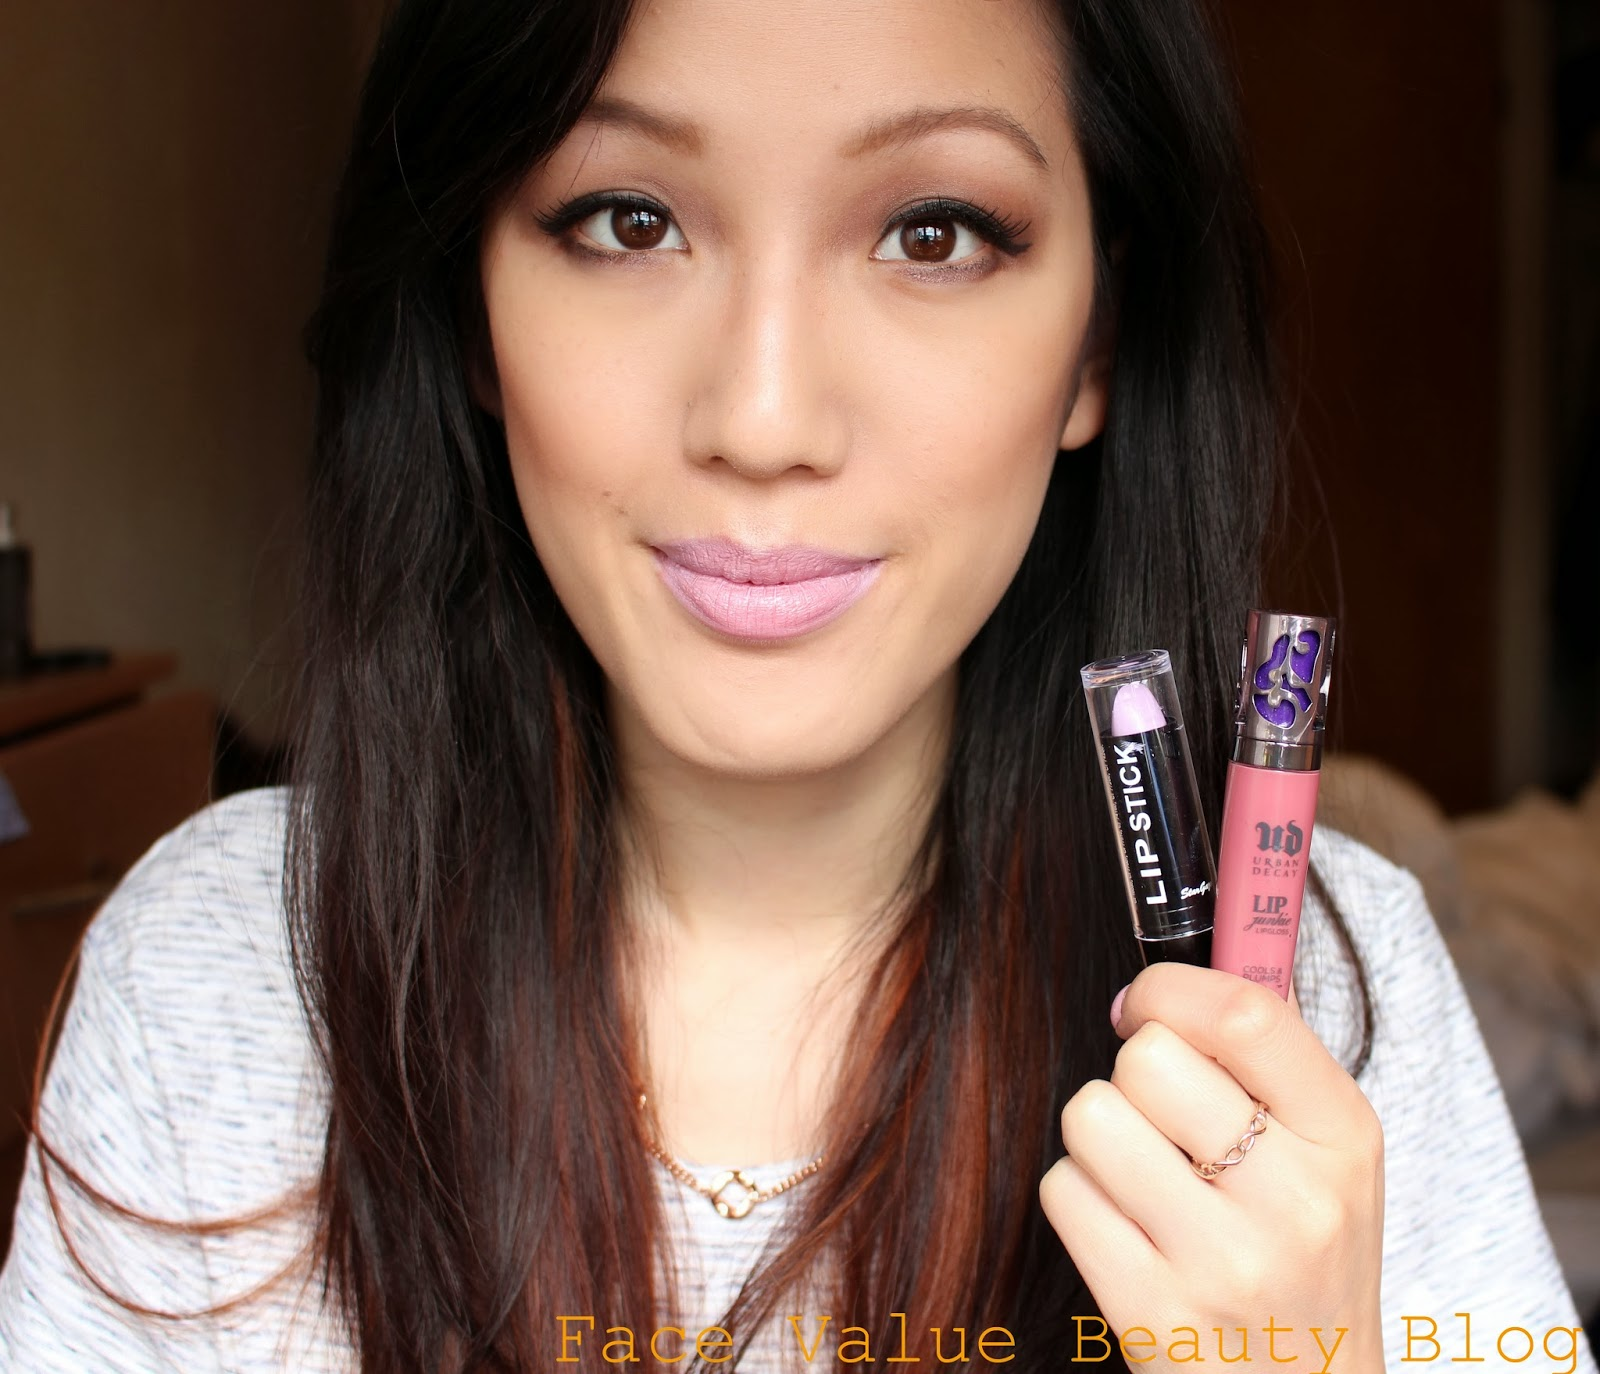 stargazer lilac lipstick jessie j lilac lip beauty makeup review